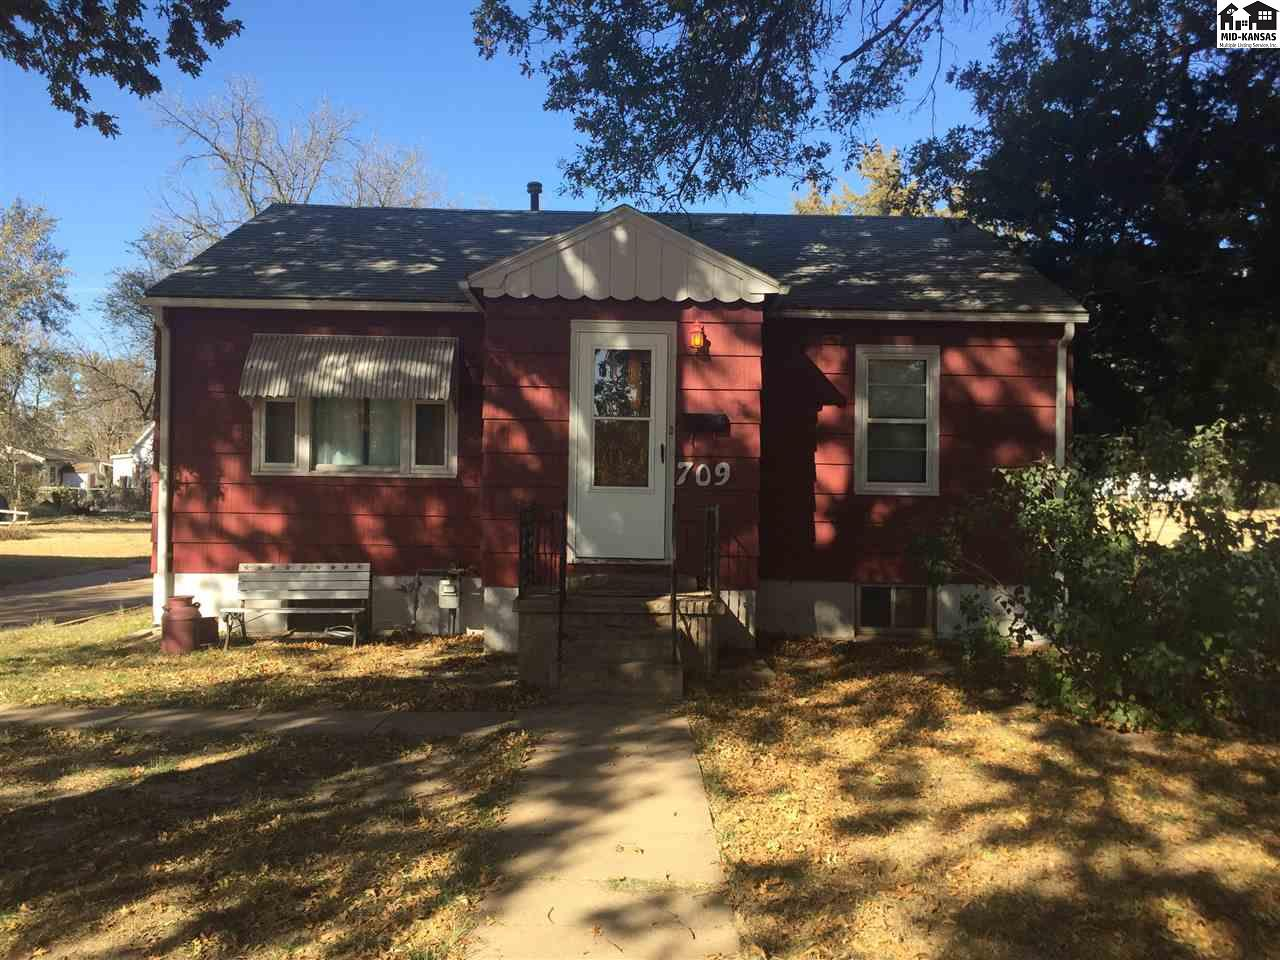 Nice home on quit street. 2 bedroom 2 bath, basement with family room. Work shop, storage shed 2 car garage with carport. and large field  next to itso it feels a little bit country.  Appliances stay and work but not warranted. Sell's in as is conditon.